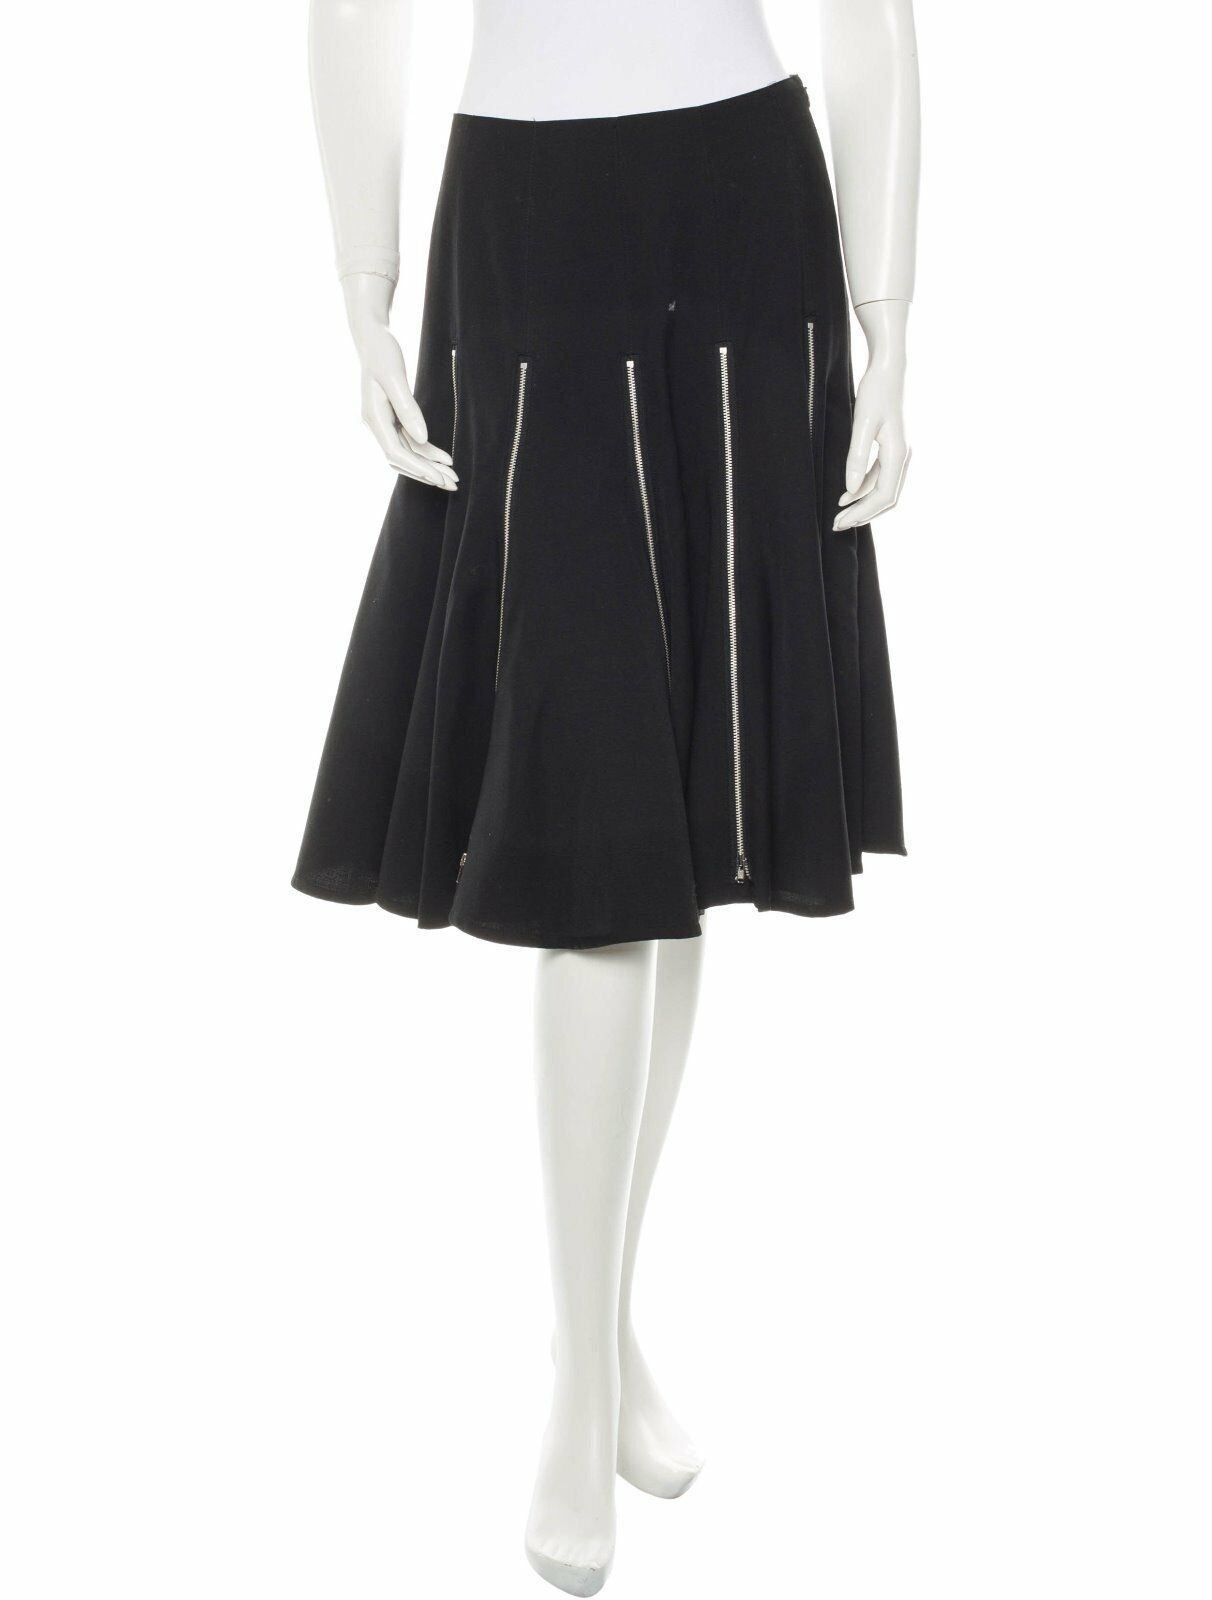 SPECTACULAR NEW  3K JUNYA WATANABE COMME DES GARCONS WOOL SKIRT WITH ZIPPERS